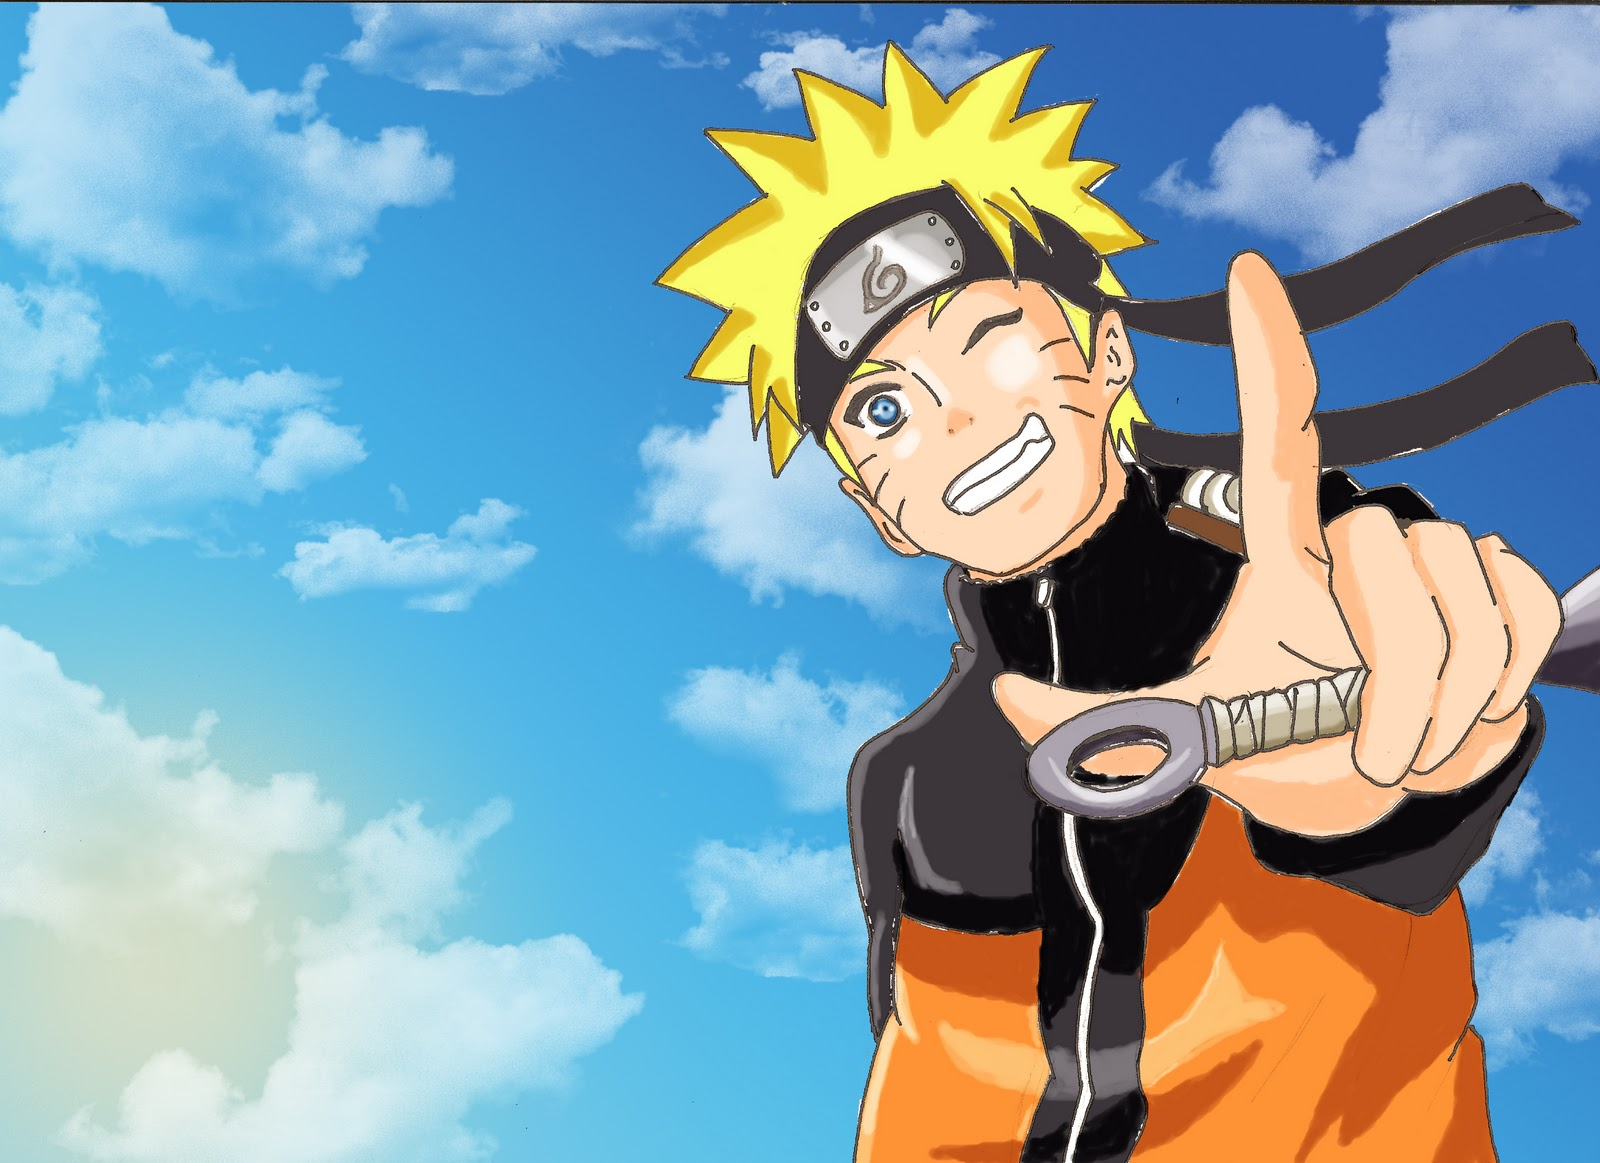 Free Download Image Gallery For Naruto Shippuden Wallpaper Hd Download 1600x1163 For Your Desktop Mobile Tablet Explore 50 Download Wallpaper Naruto Hd Hd Anime Wallpapers Naruto Shippuden Wallpaper Naruto